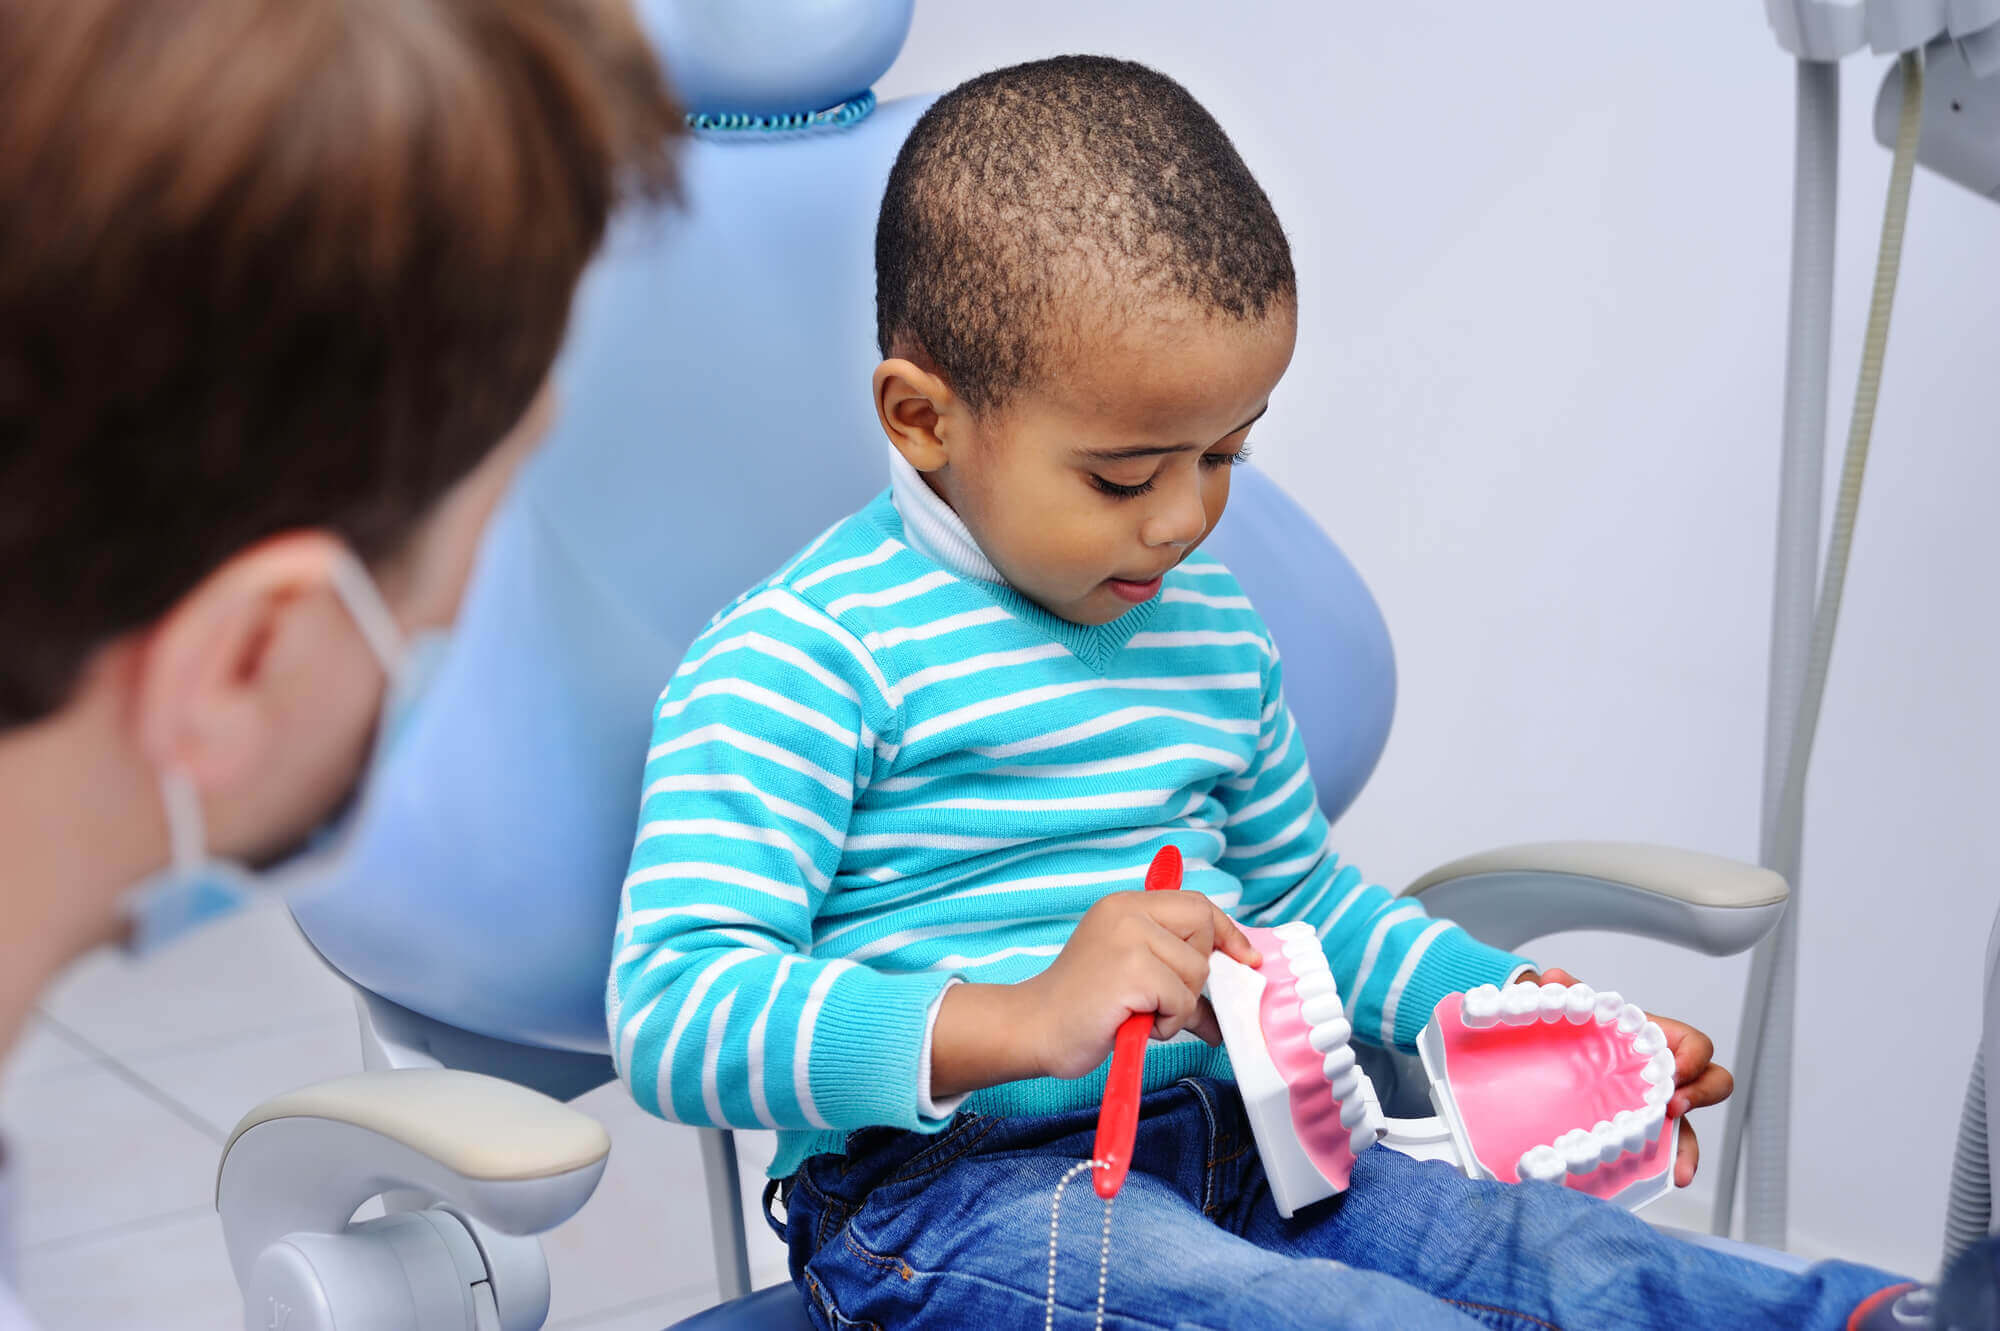 Cute Baby In The Dental Chair Learning about Brushing and Flossing from Dentist